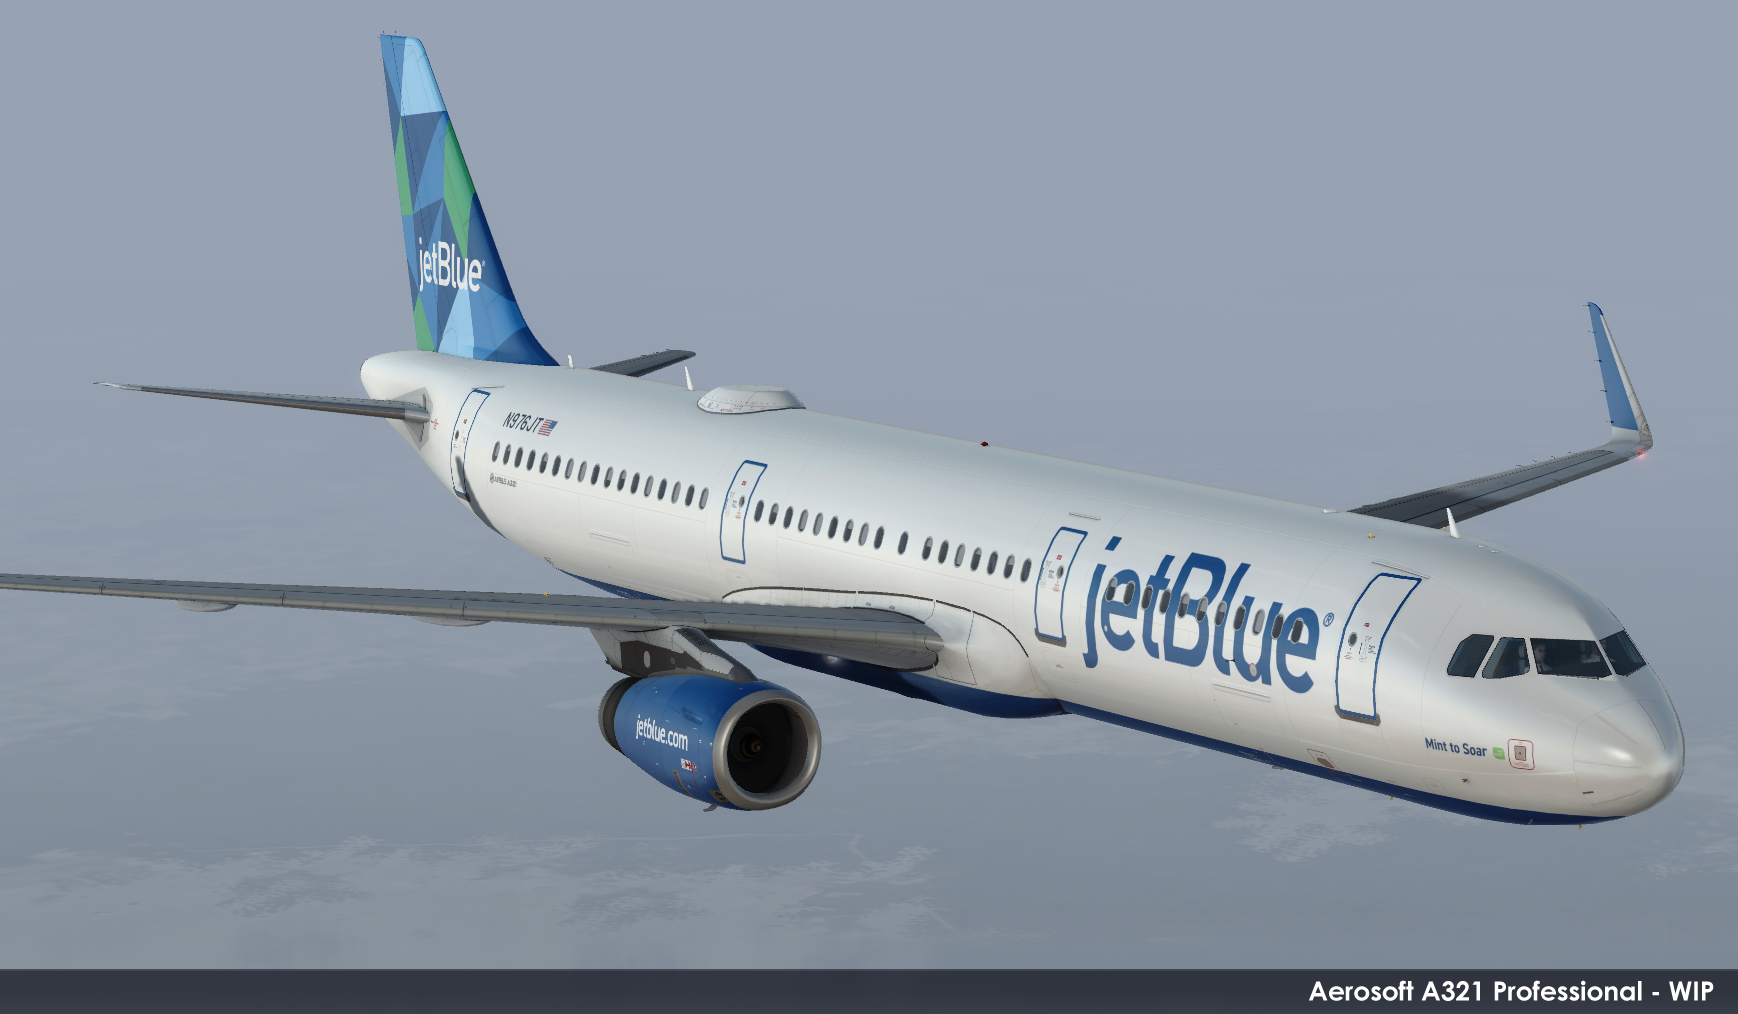 Aerosoft A321 Professional jetBlue Previews! | PC Flight